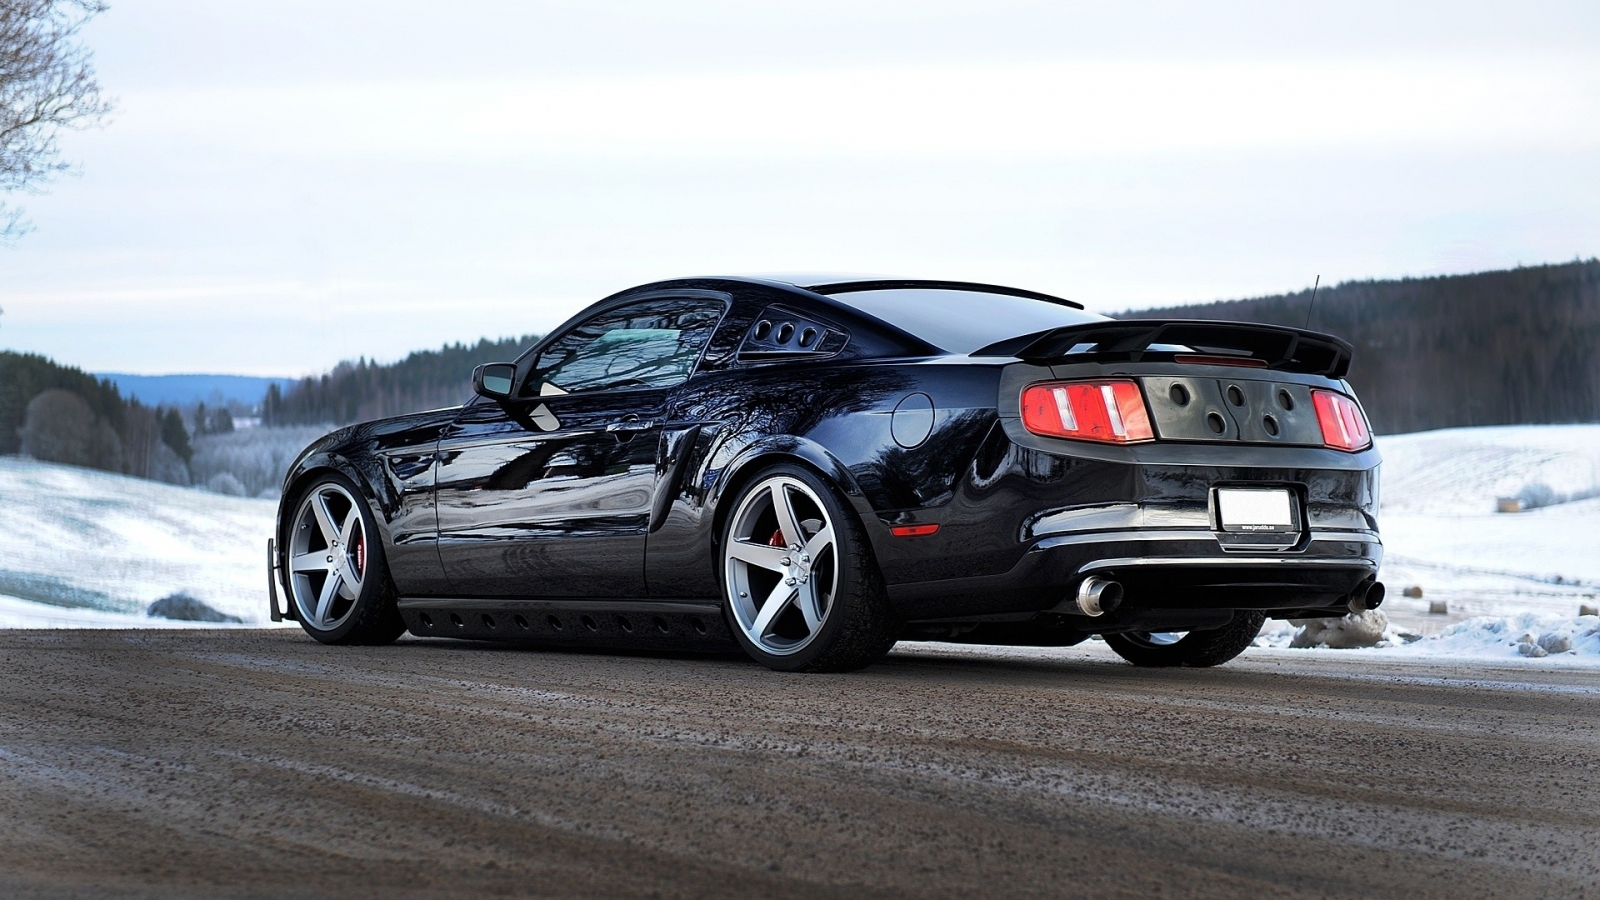 Ford Mustang GT 2013 - 1600x900